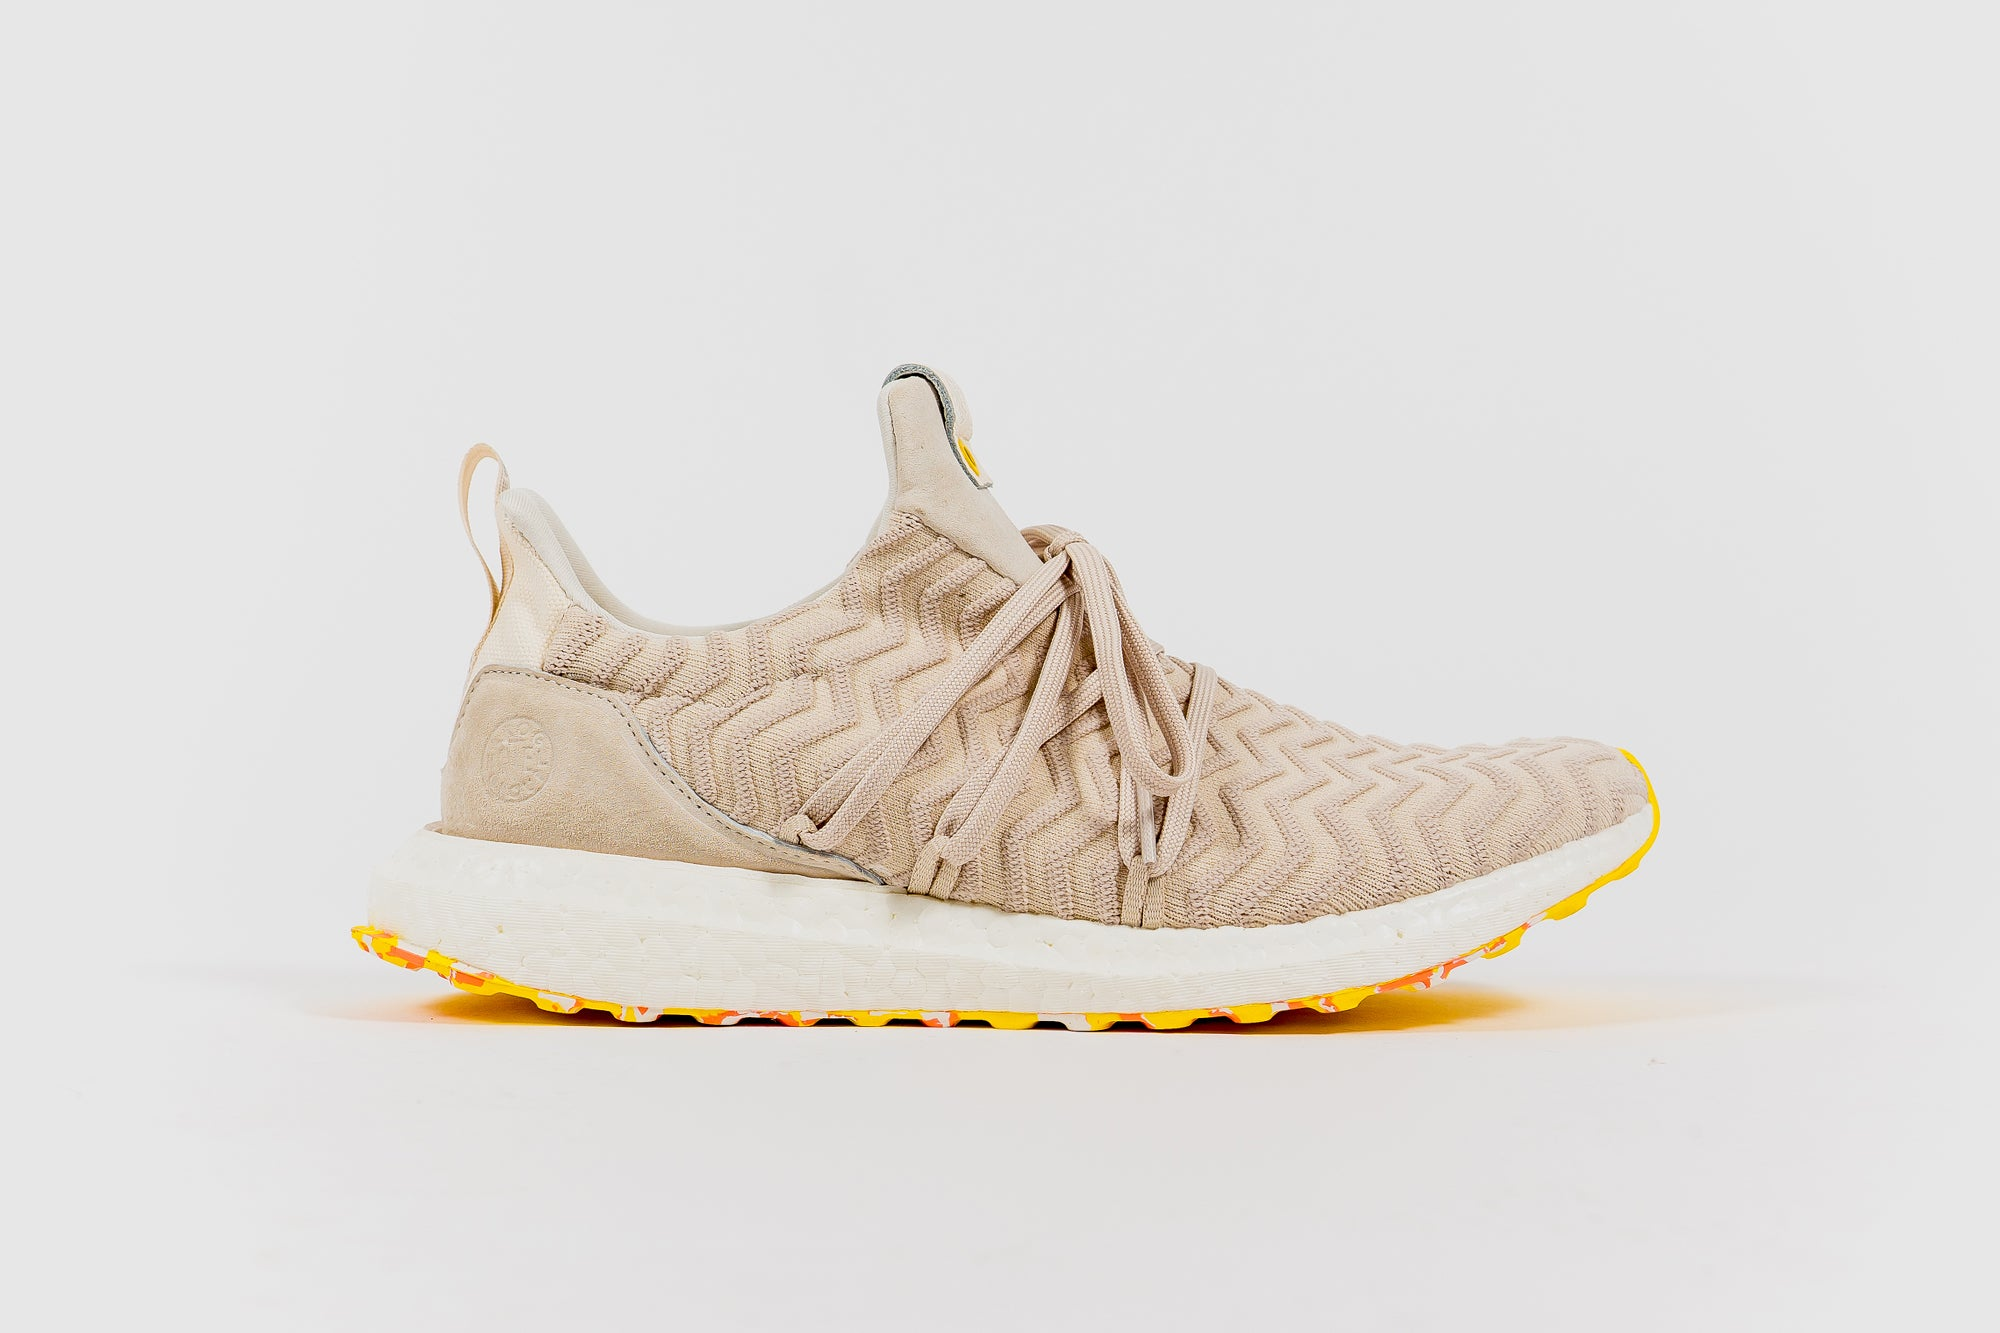 ADIDAS ULTRA BOOST A KIND OF GUISE - PACKER SHOES